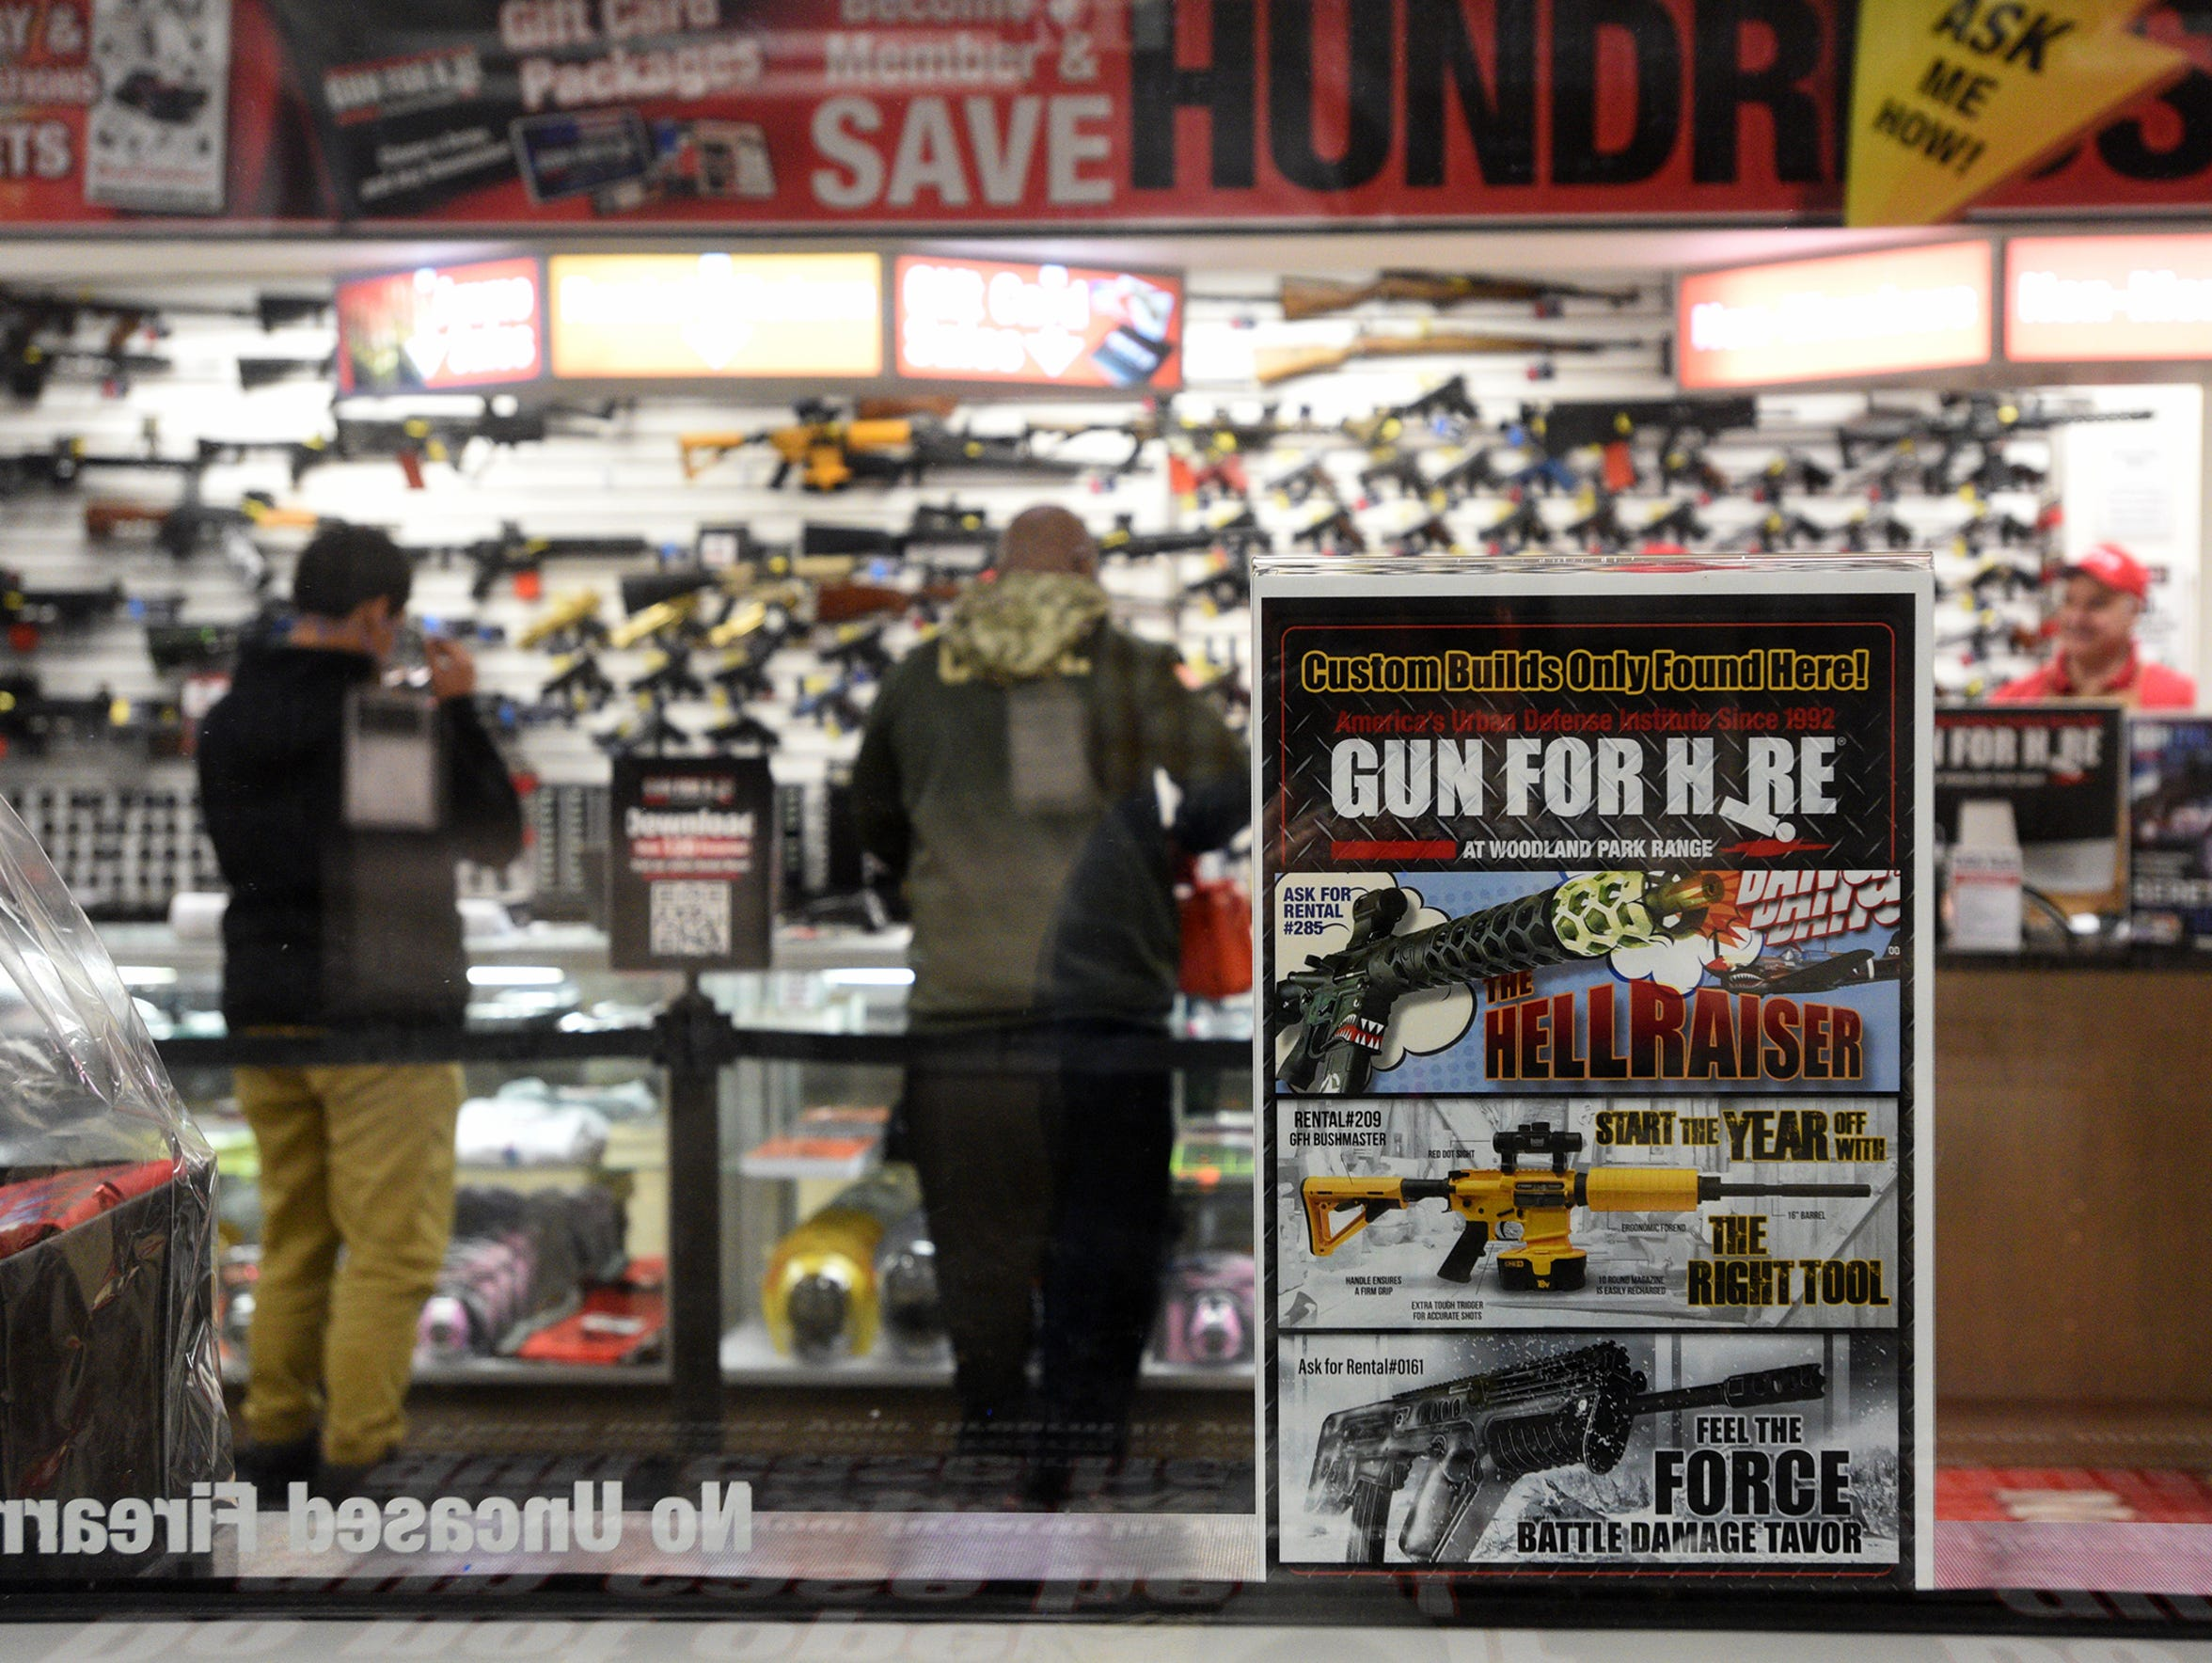 An advertisement at Gun For Hire in Woodland Park shows